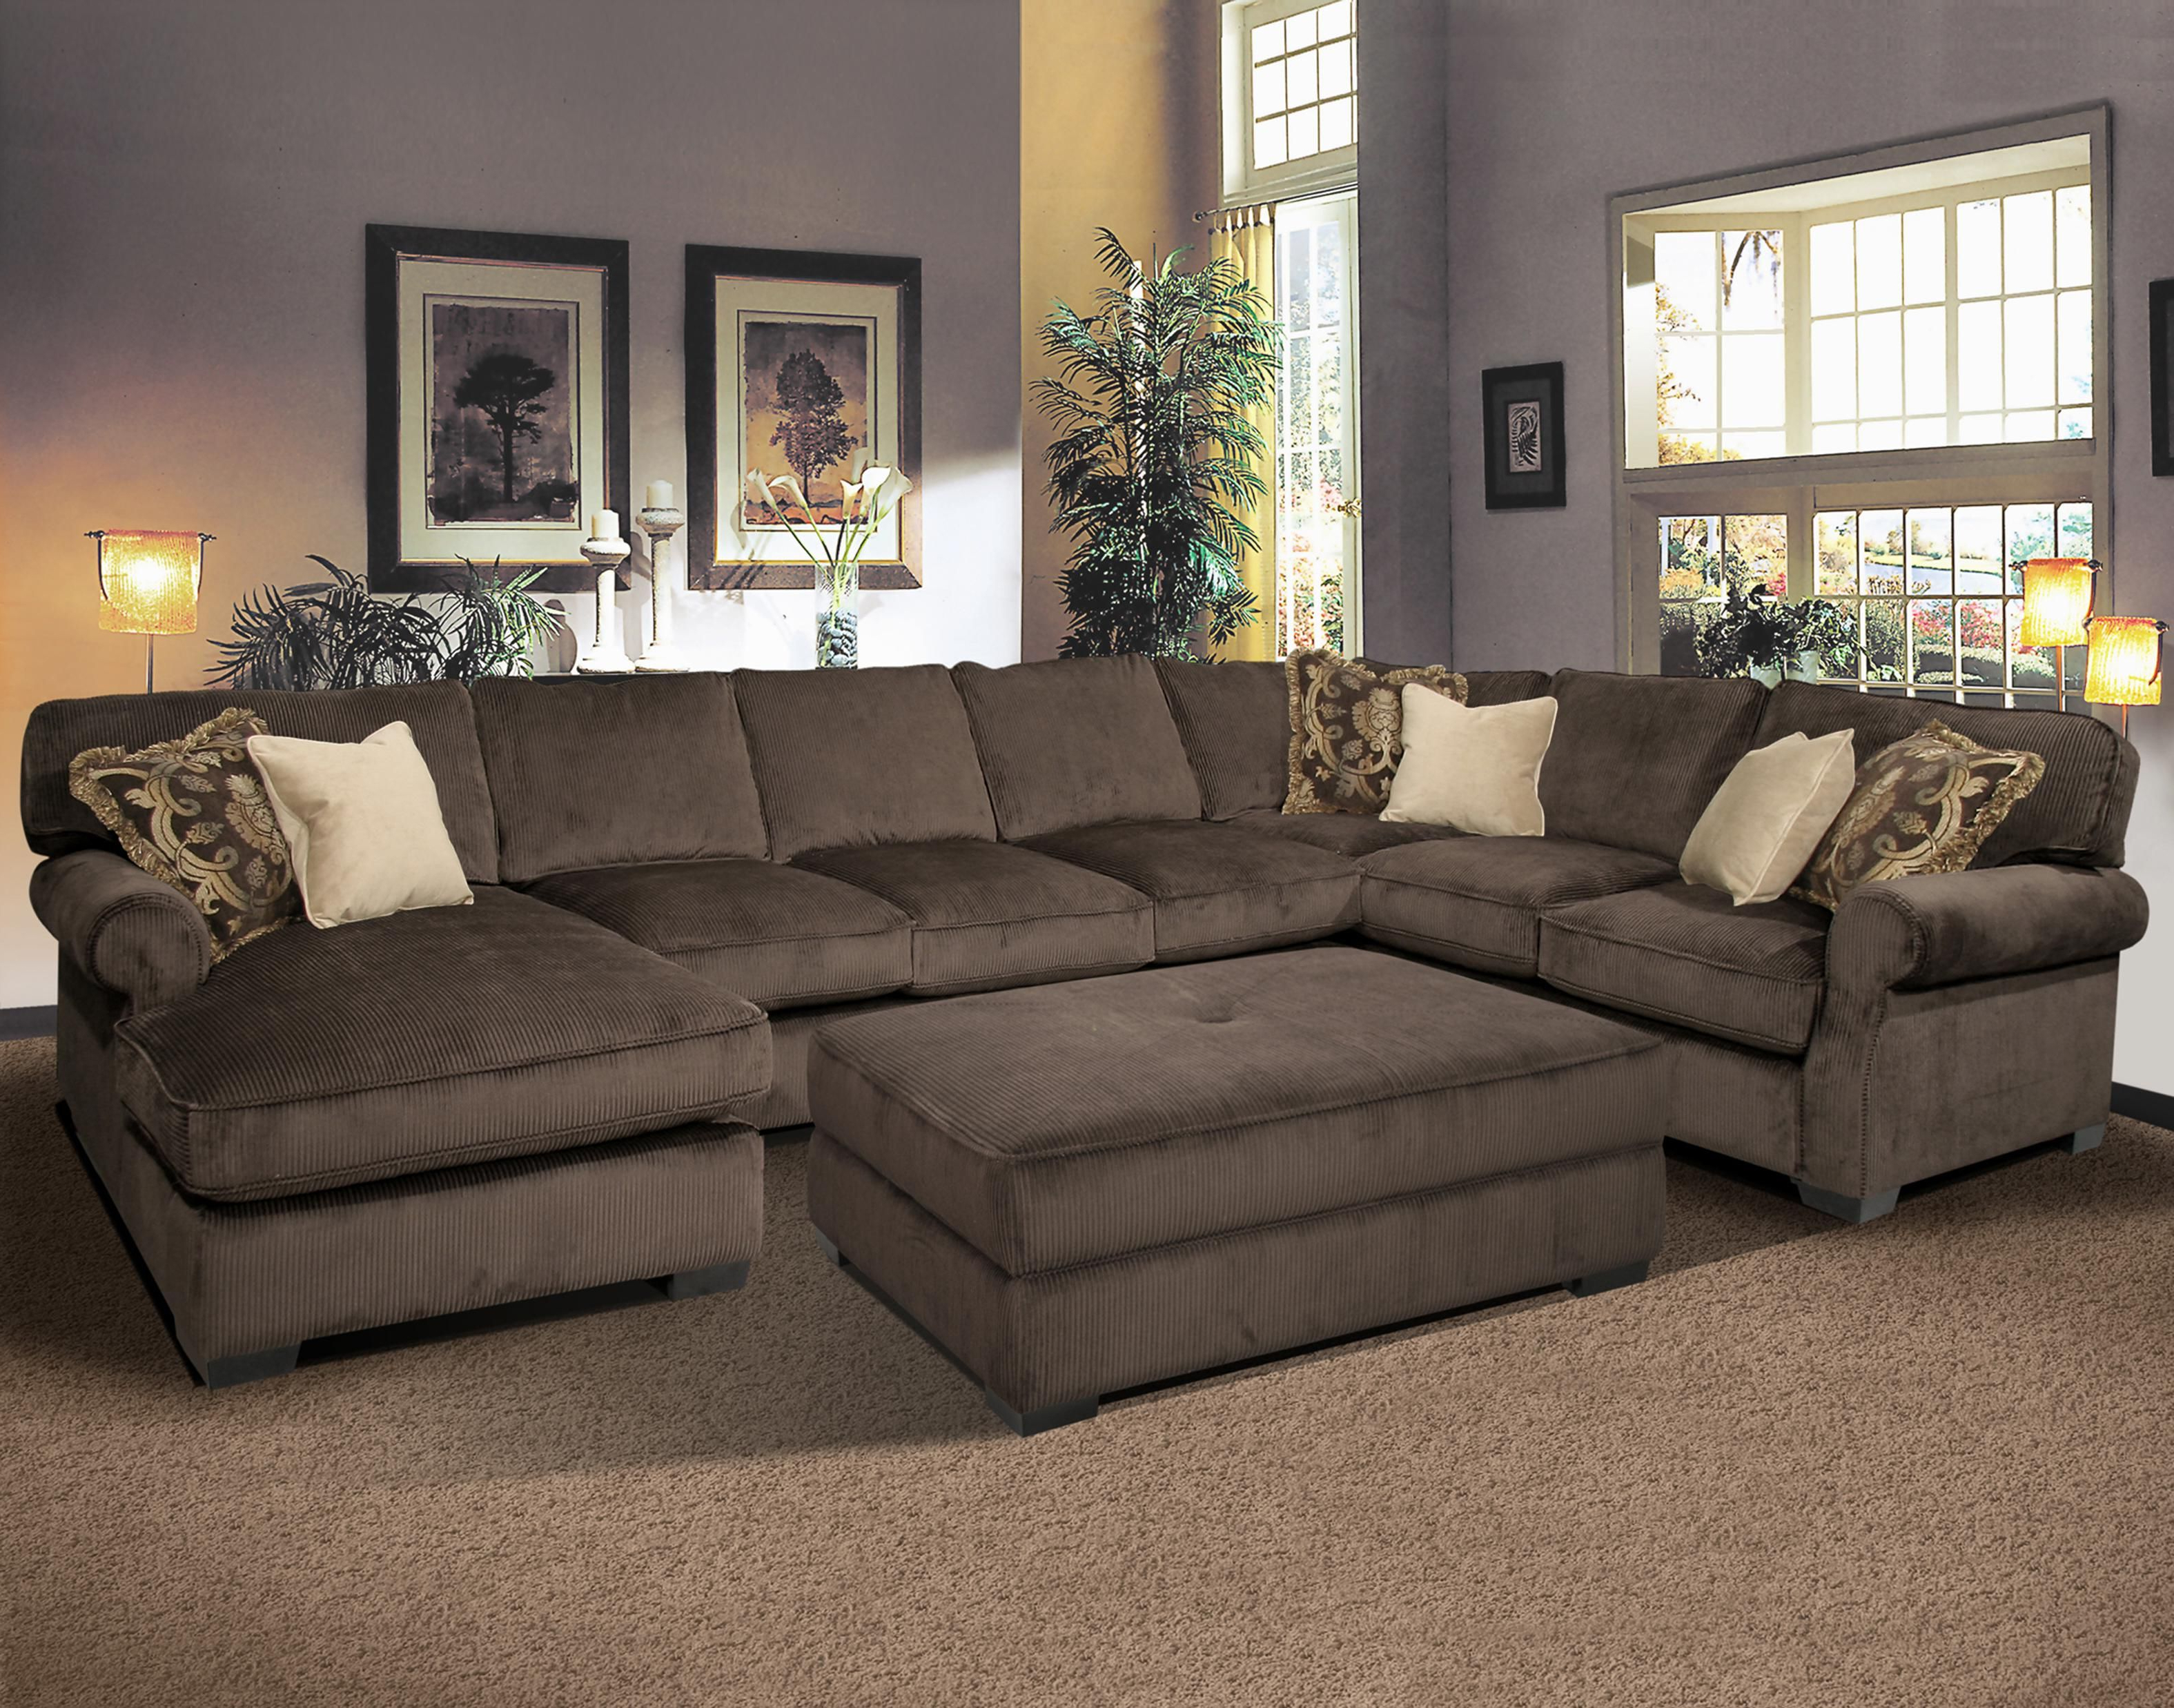 Gordon 3 Piece Sectionals With Raf Chaise Regarding 2019 Big And Comfy Grand Island Large, 7 Seat Sectional Sofa With Right (View 19 of 20)